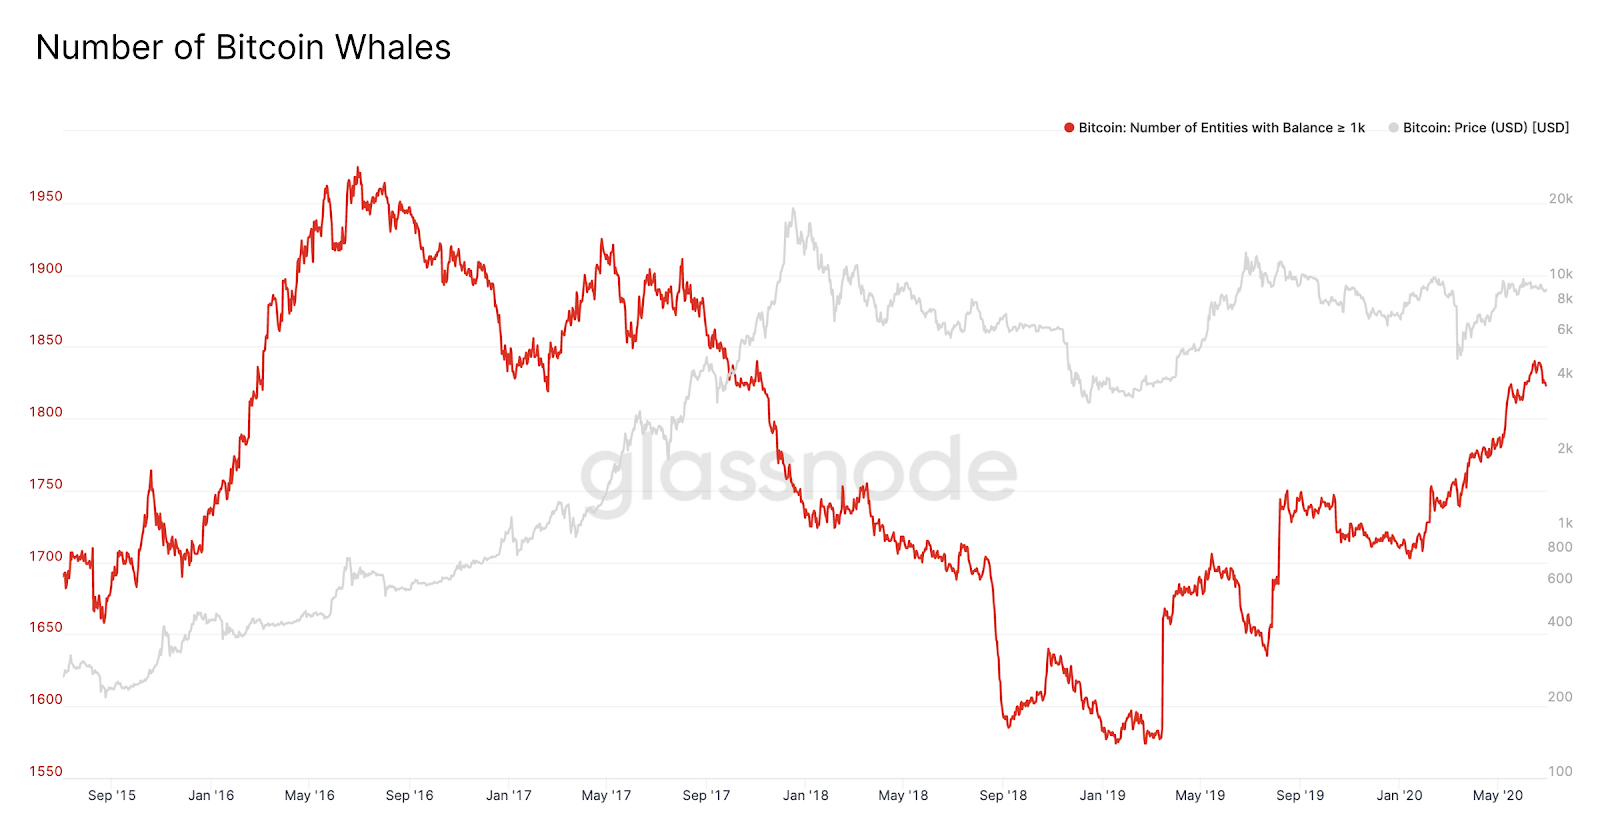 The number of Bitcoin whales increased substantially since March